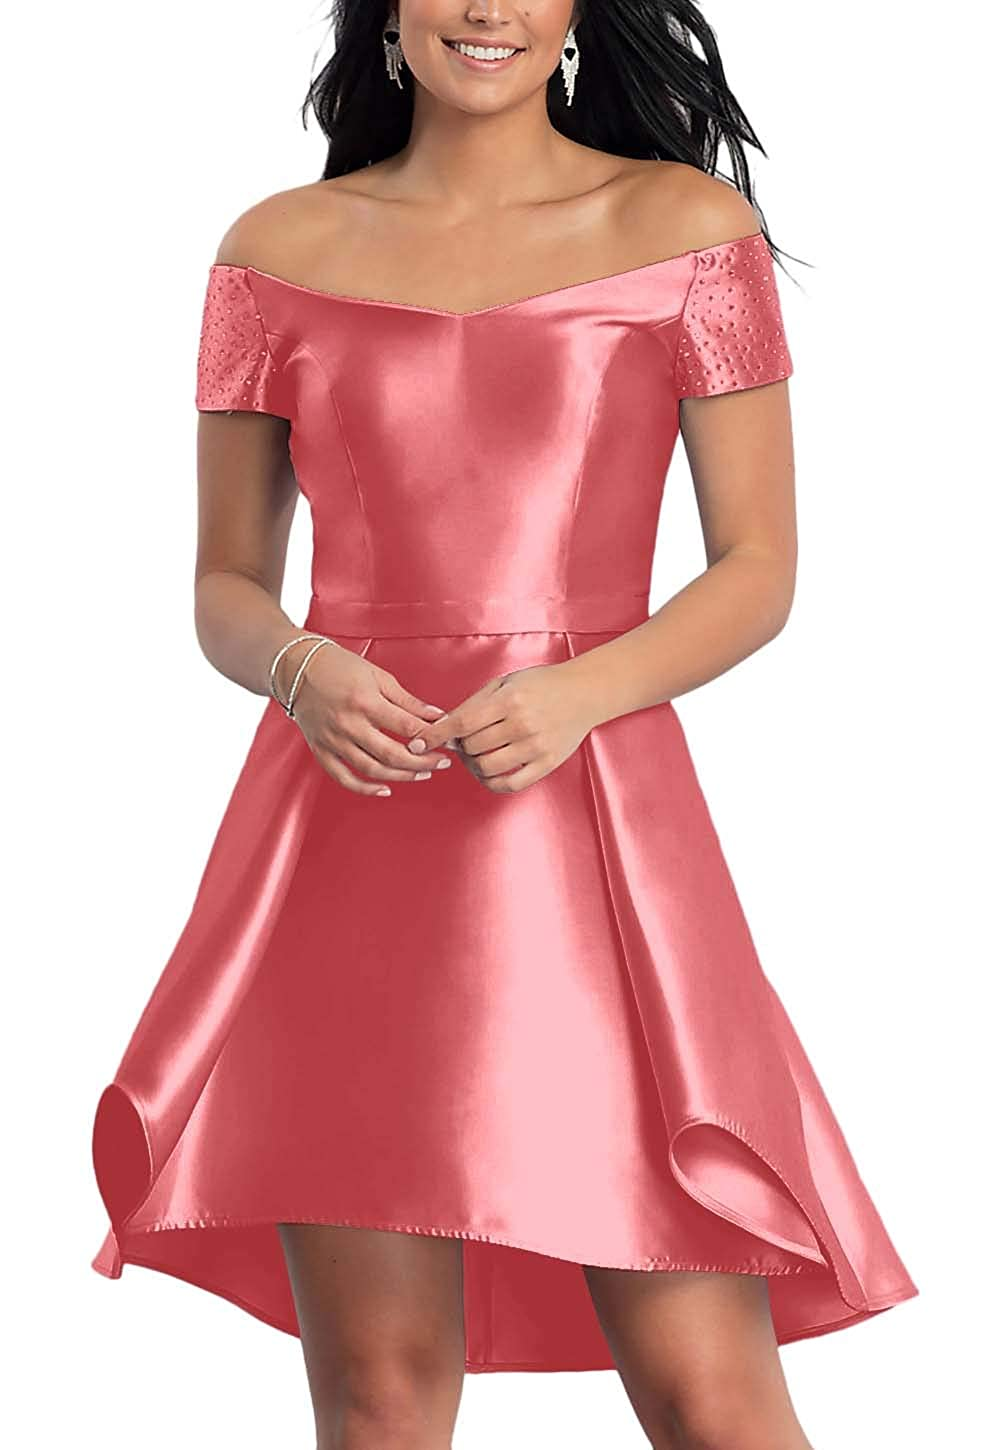 Coral FeiYueXinXing Satin HighLow Short OffTheShoulder Homecoming Dress for Juniors with Pockets